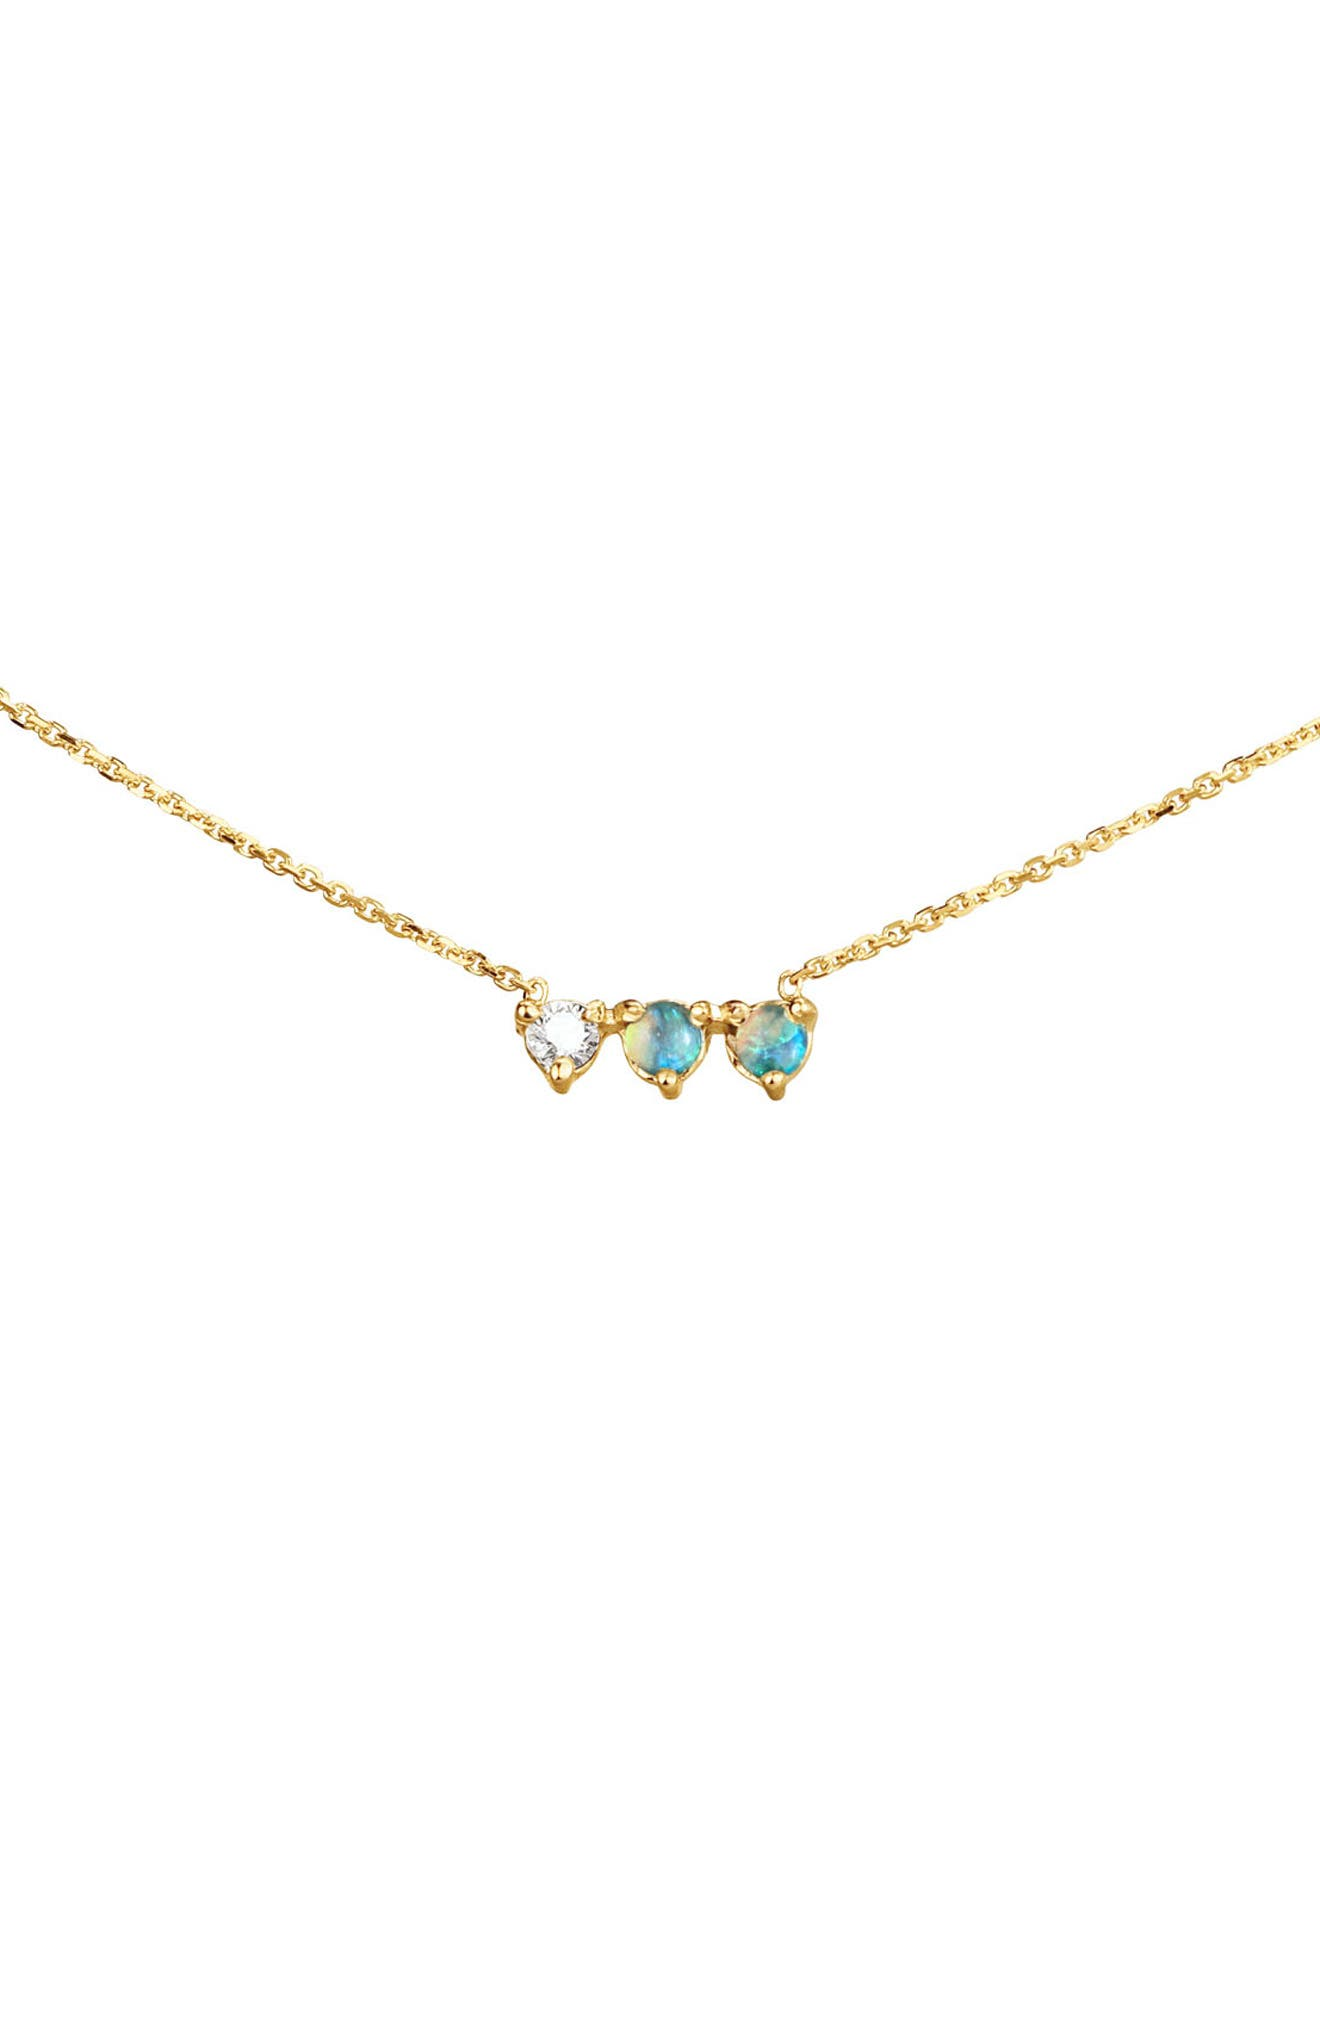 Three Points Opal & Diamond Necklace,                         Main,                         color, 14KT GOLD